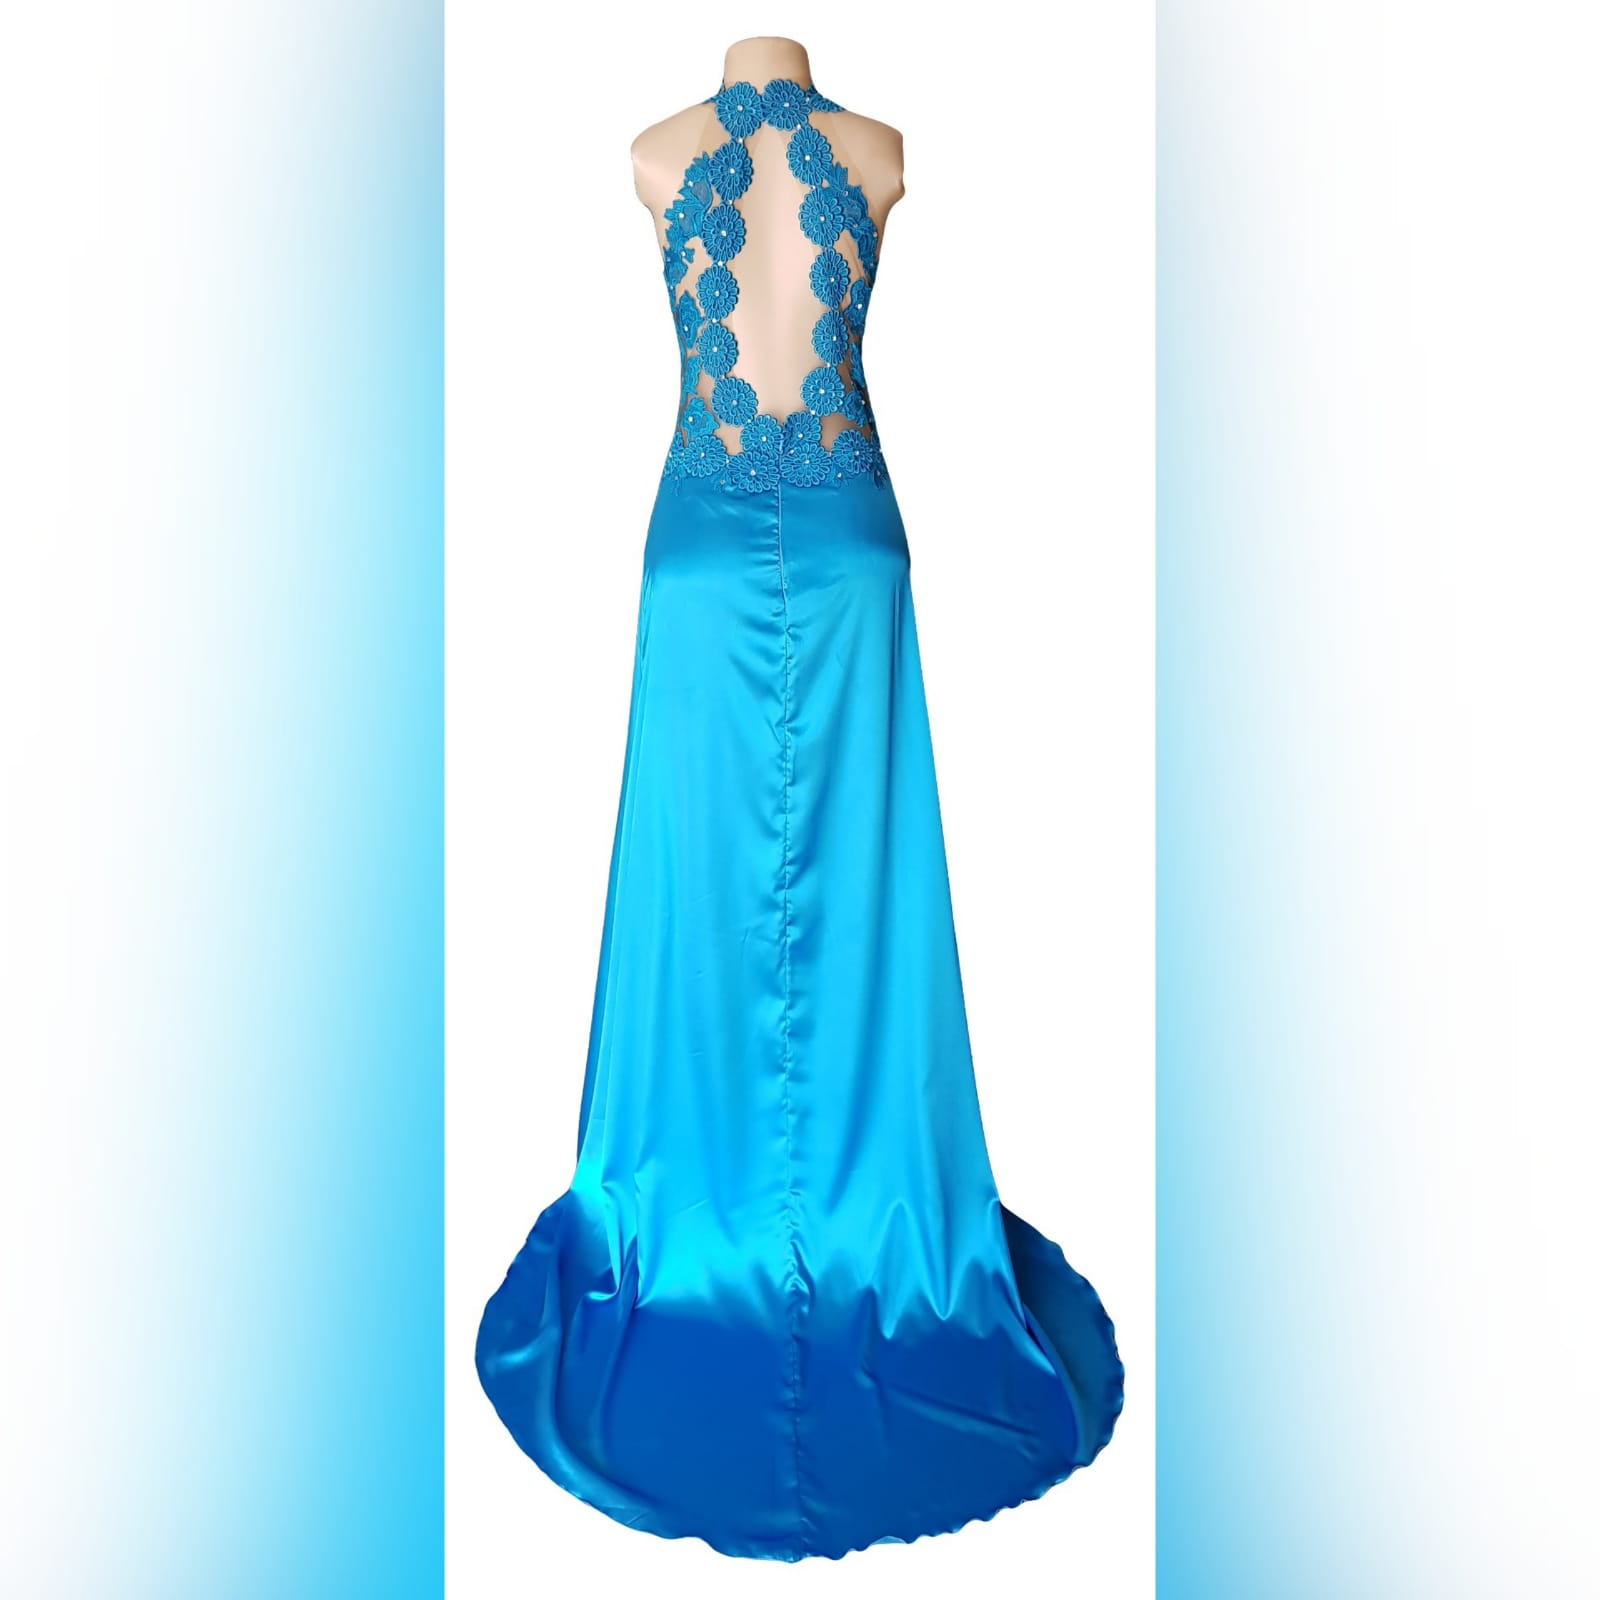 Blue long satin lace prom dress 4 blue long satin lace prom dress. Lace bodice with an illusion neckline and oval back opening with a slit and a train.